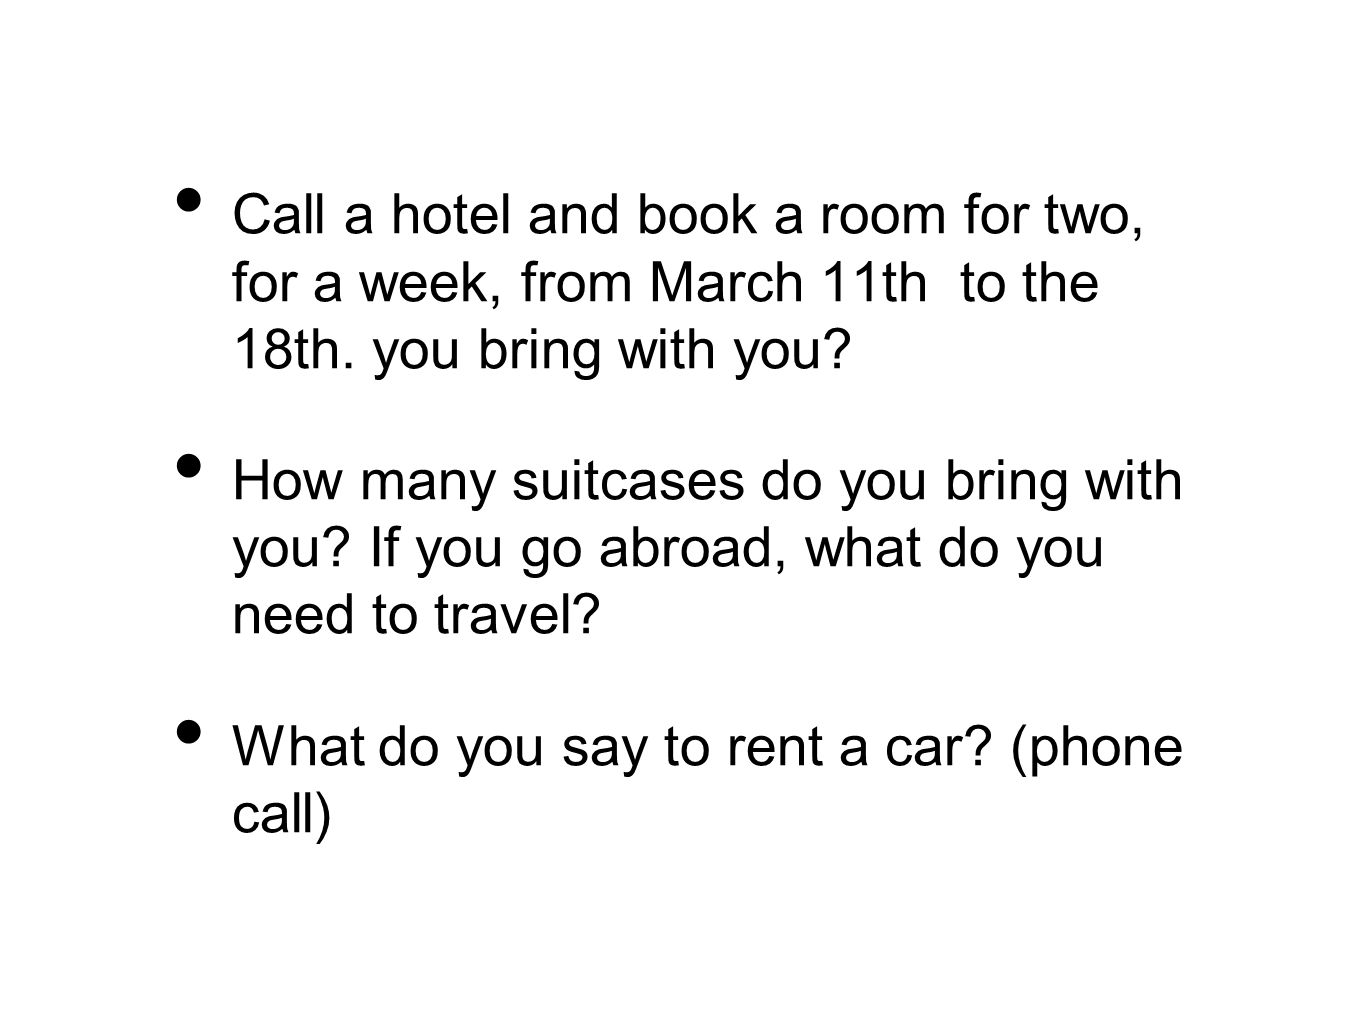 Call a hotel and book a room for two, for a week, from March 11th to the 18th. you bring with you